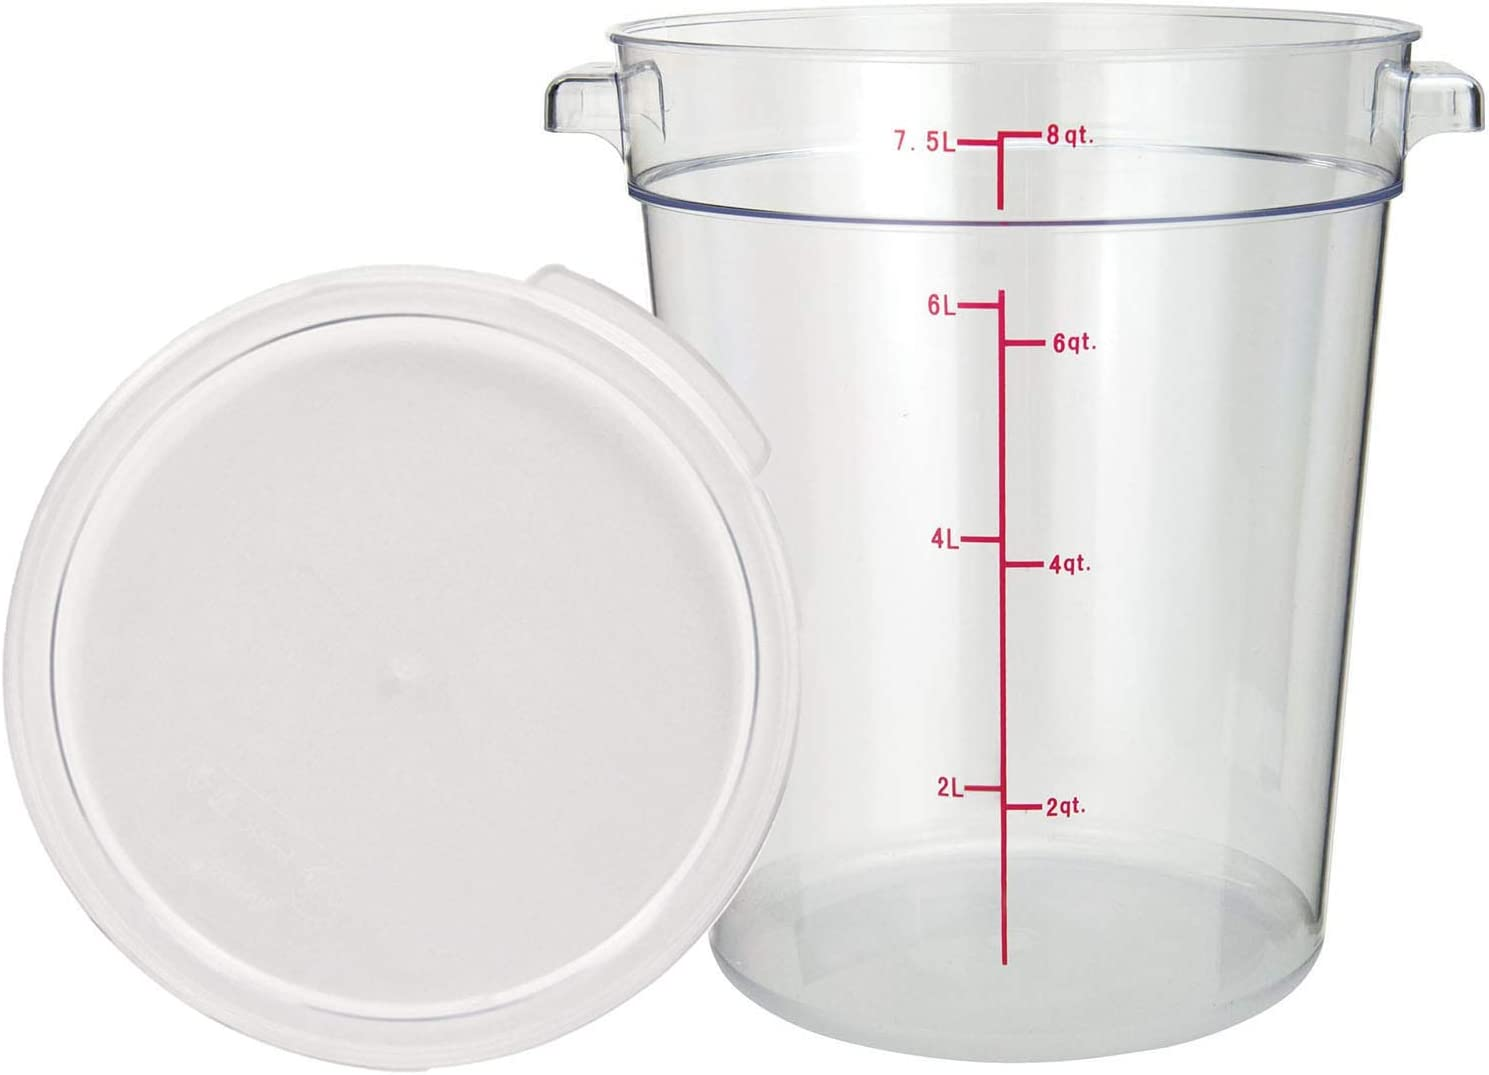 Tiger Chef 8 Quart Commercial Grade Clear Food Storage Round Polycarbonate Containers With Clear Lids